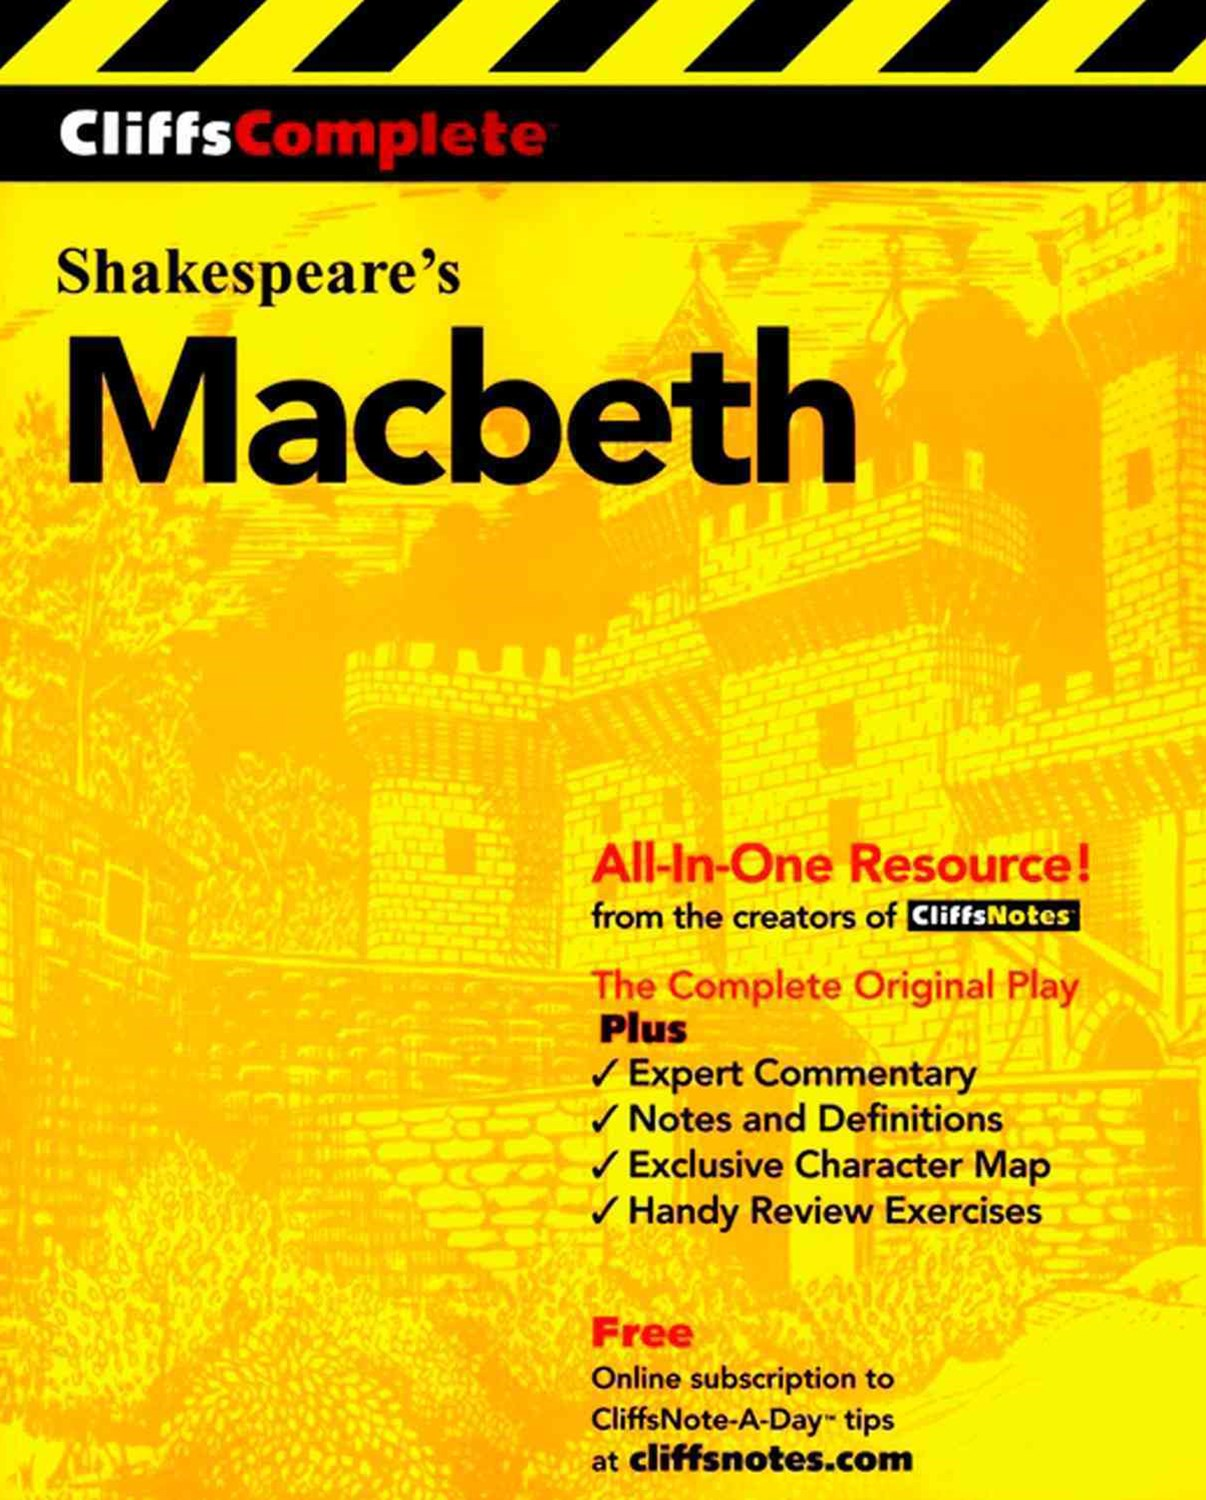 CliffsComplete Shakespeare's Macbeth